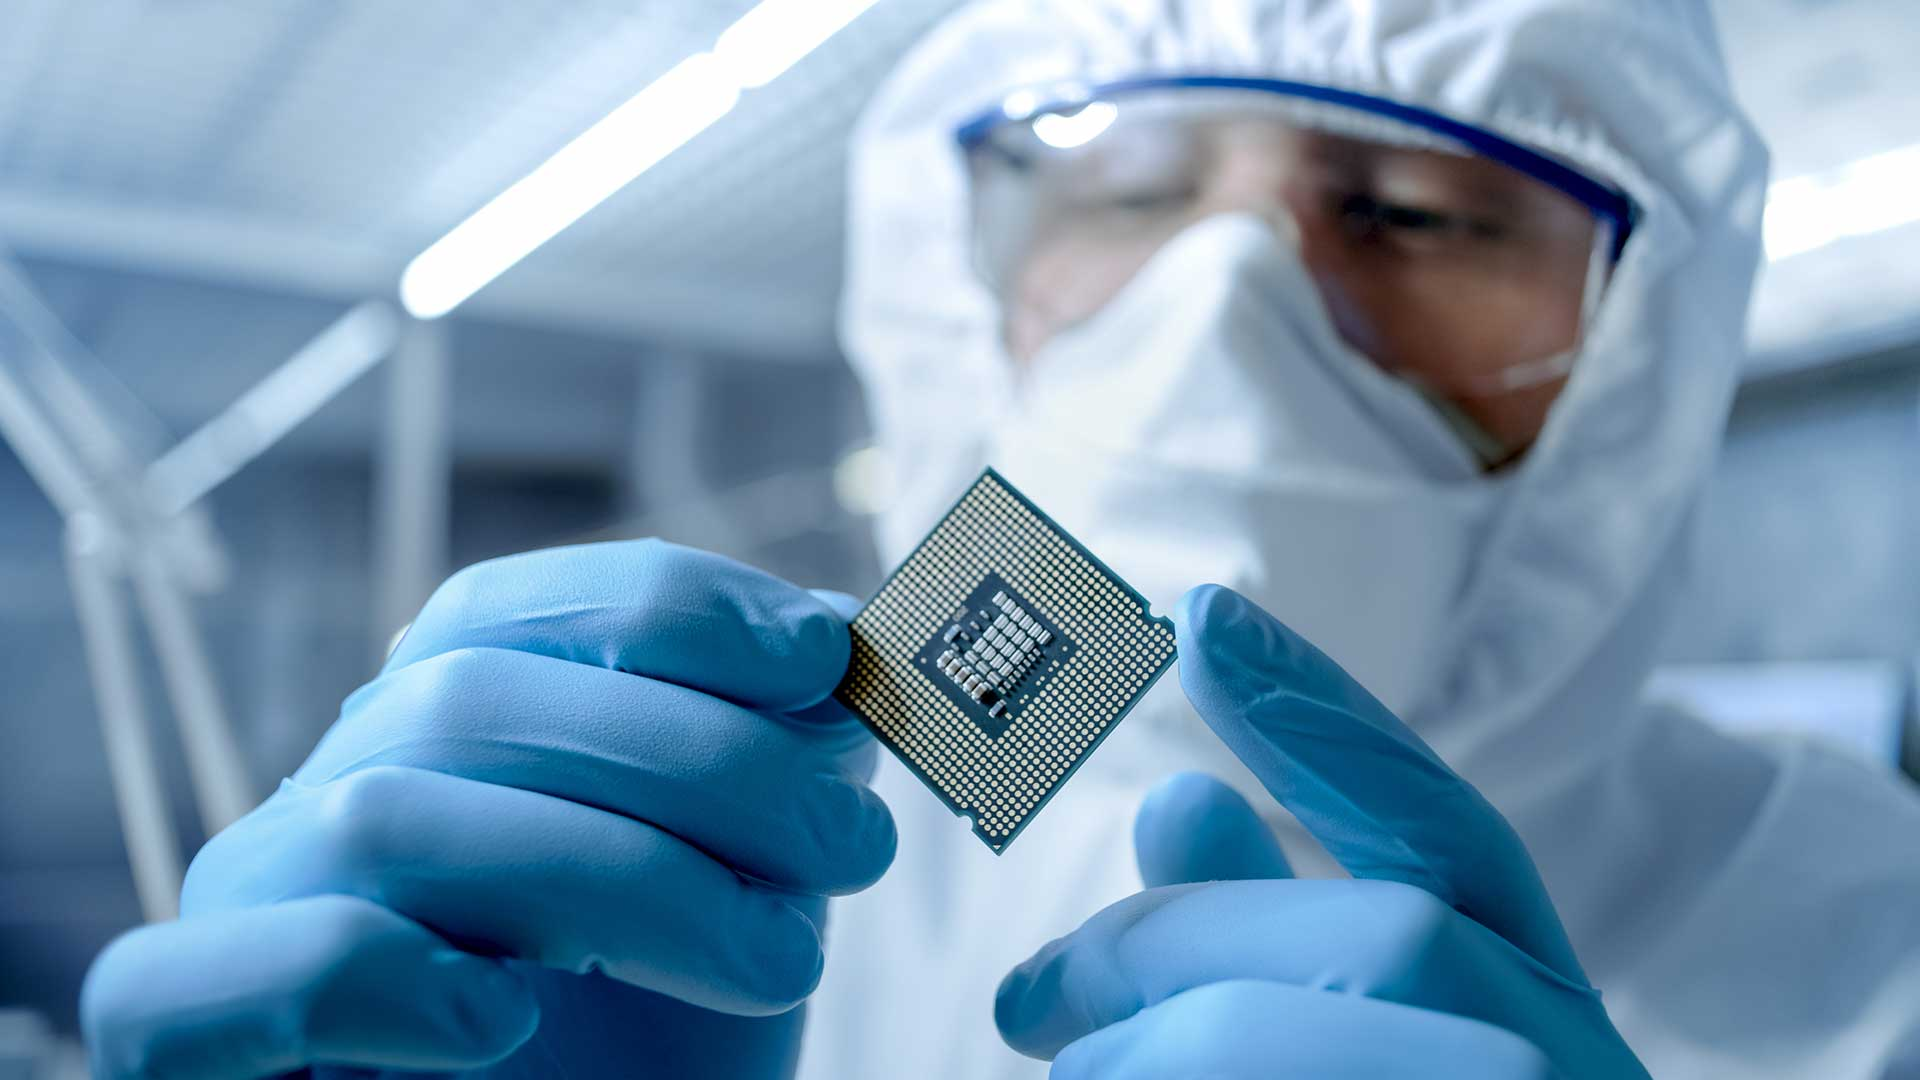 There's a global microchip shortage, and it doesn't look like abating anytime soon. Image: